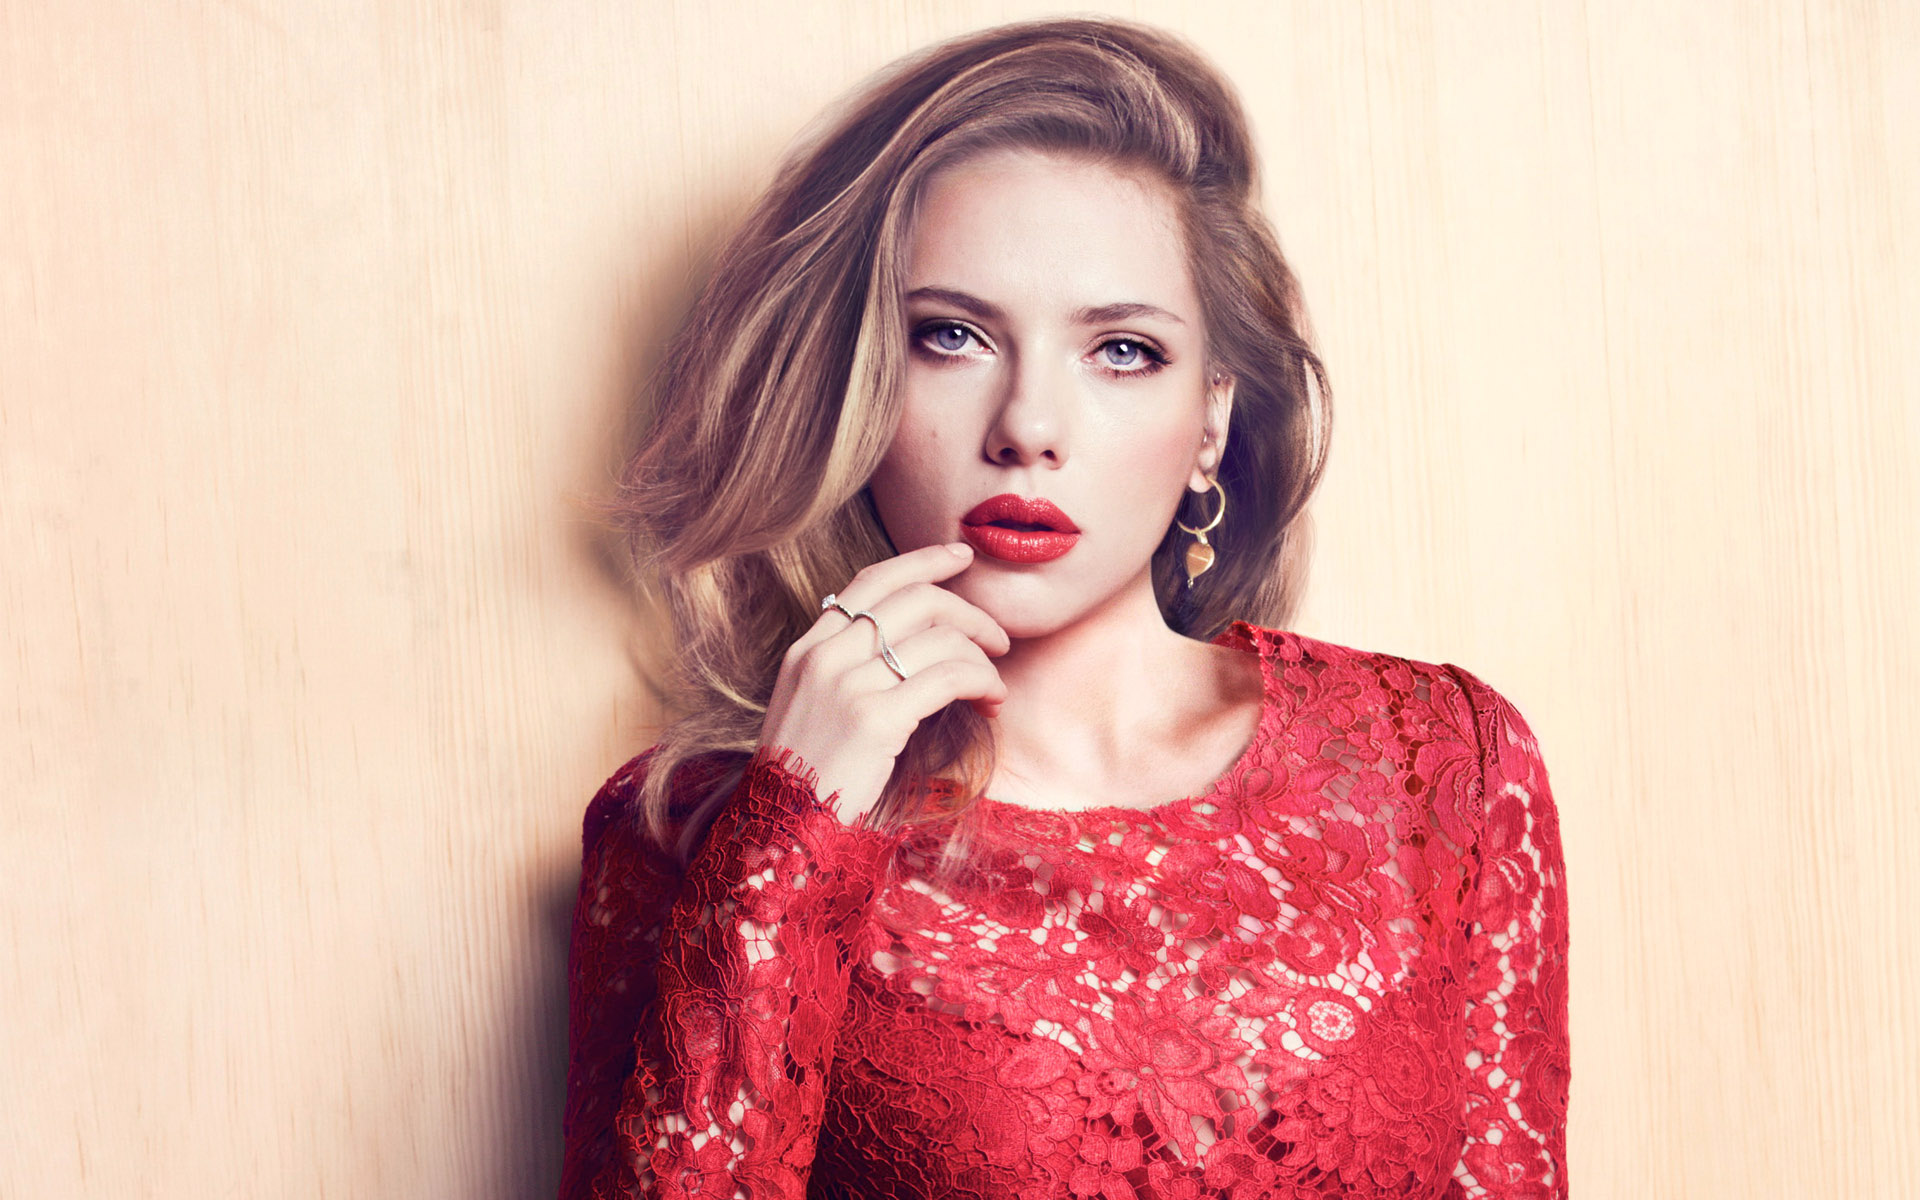 Scarlett Johansson 2015 Wallpapers Scarlett Johansson 2015 Wallpapers ...